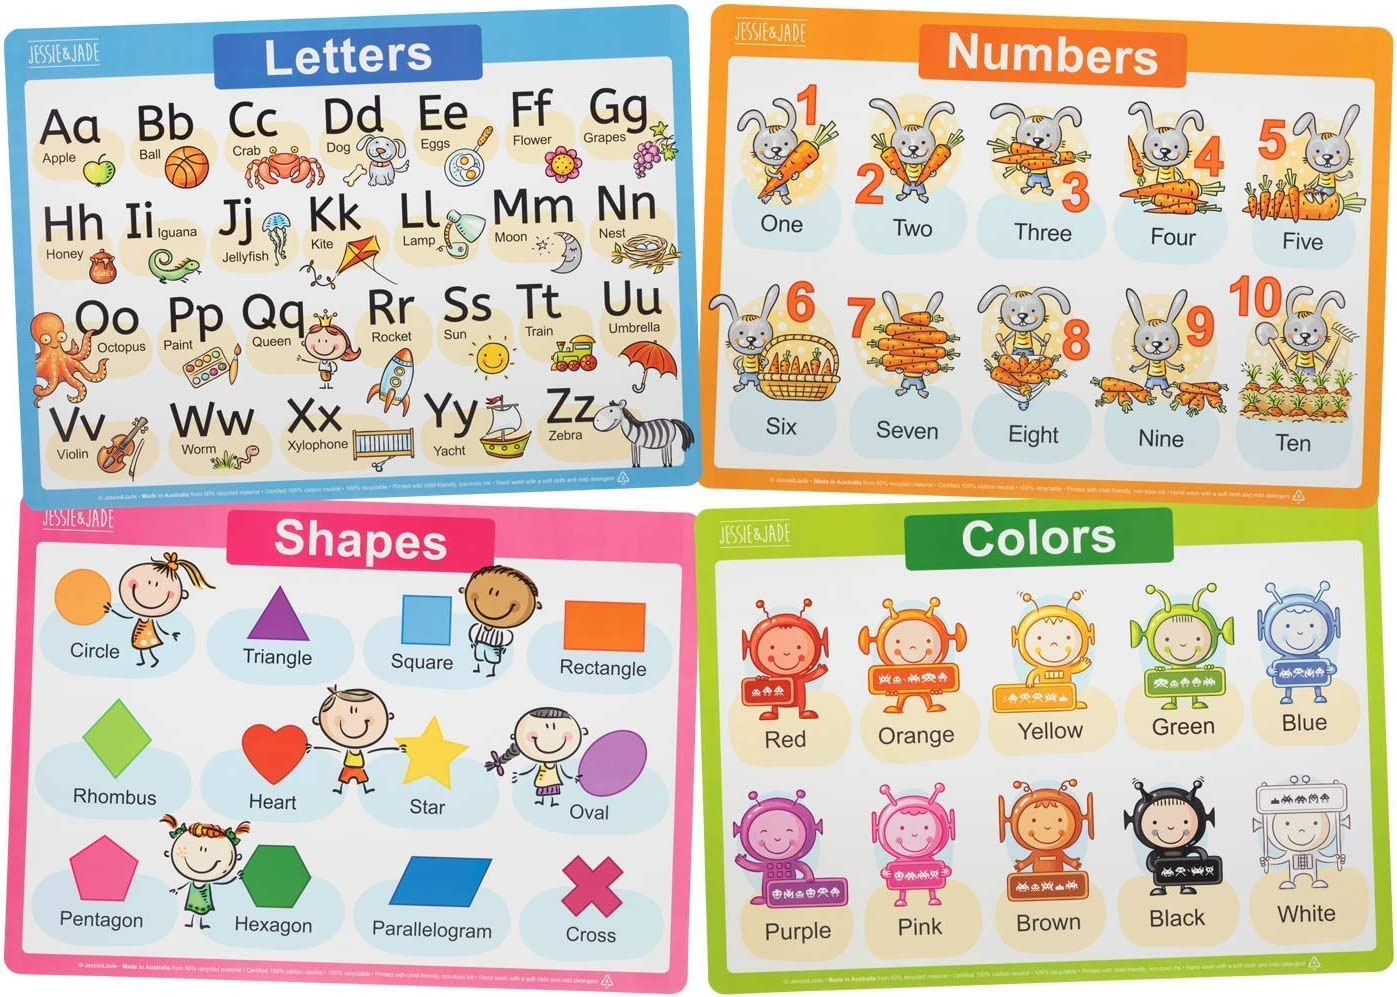 Jessie&Jade Educational Placemats for Kids - Set of 4: Alphabet, Numbers, Shapes, Colors - Washable, Durable, Reusable - Large Learning Mats for Toddlers, Preschoolers - Plastic Kids Placemat Non Slip